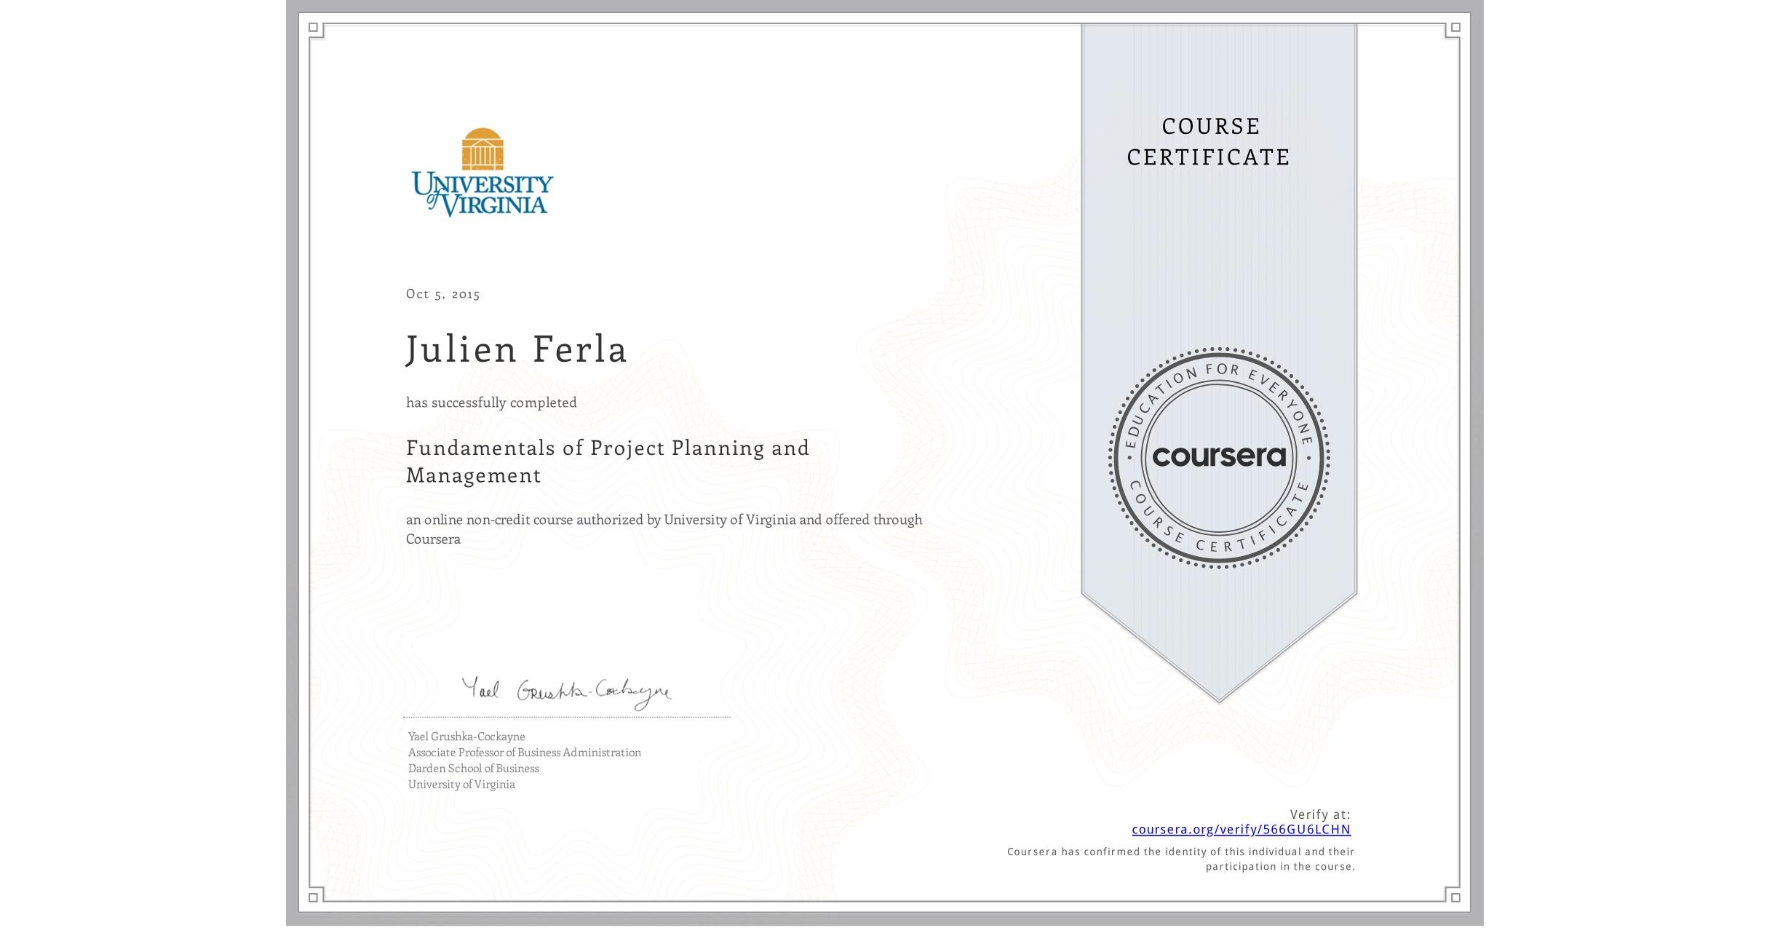 View certificate for Julien Ferla, Fundamentals of Project Planning and Management, an online non-credit course authorized by University of Virginia and offered through Coursera